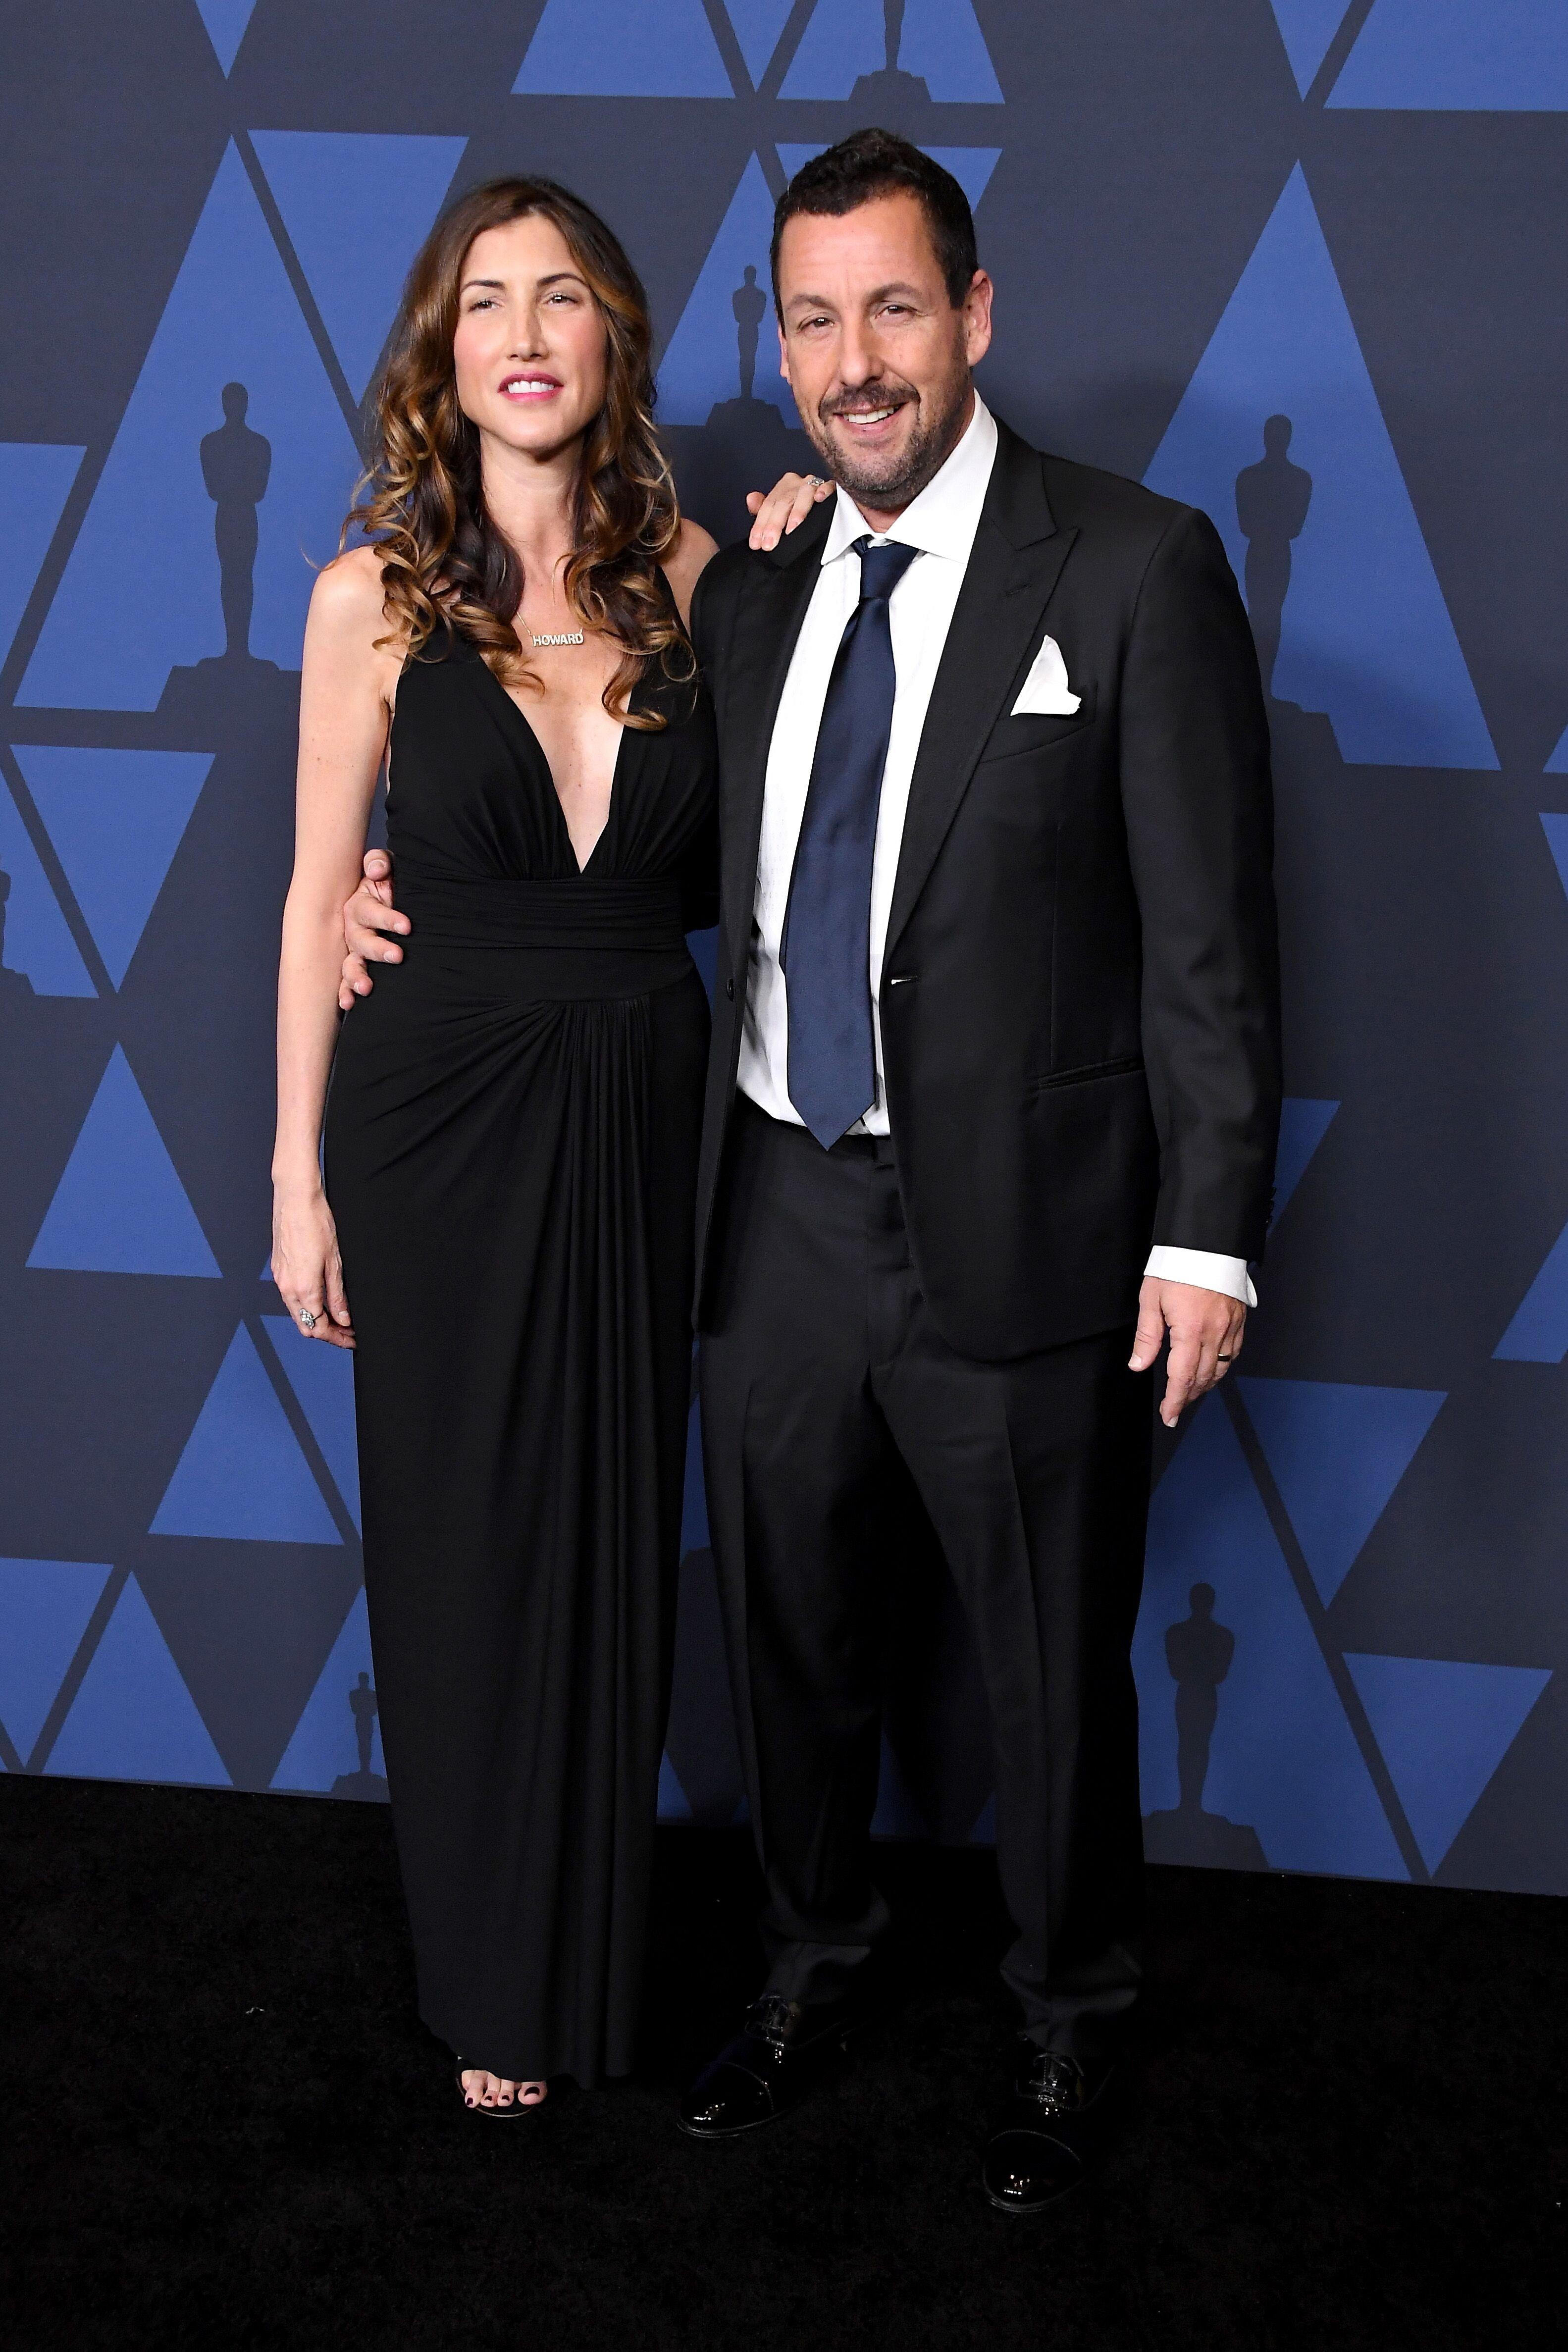 Jackie Sandler and Adam Sandler attend the Academy Of Motion Picture Arts And Sciences' 11th Annual Governors Awards. | Source: Getty Images